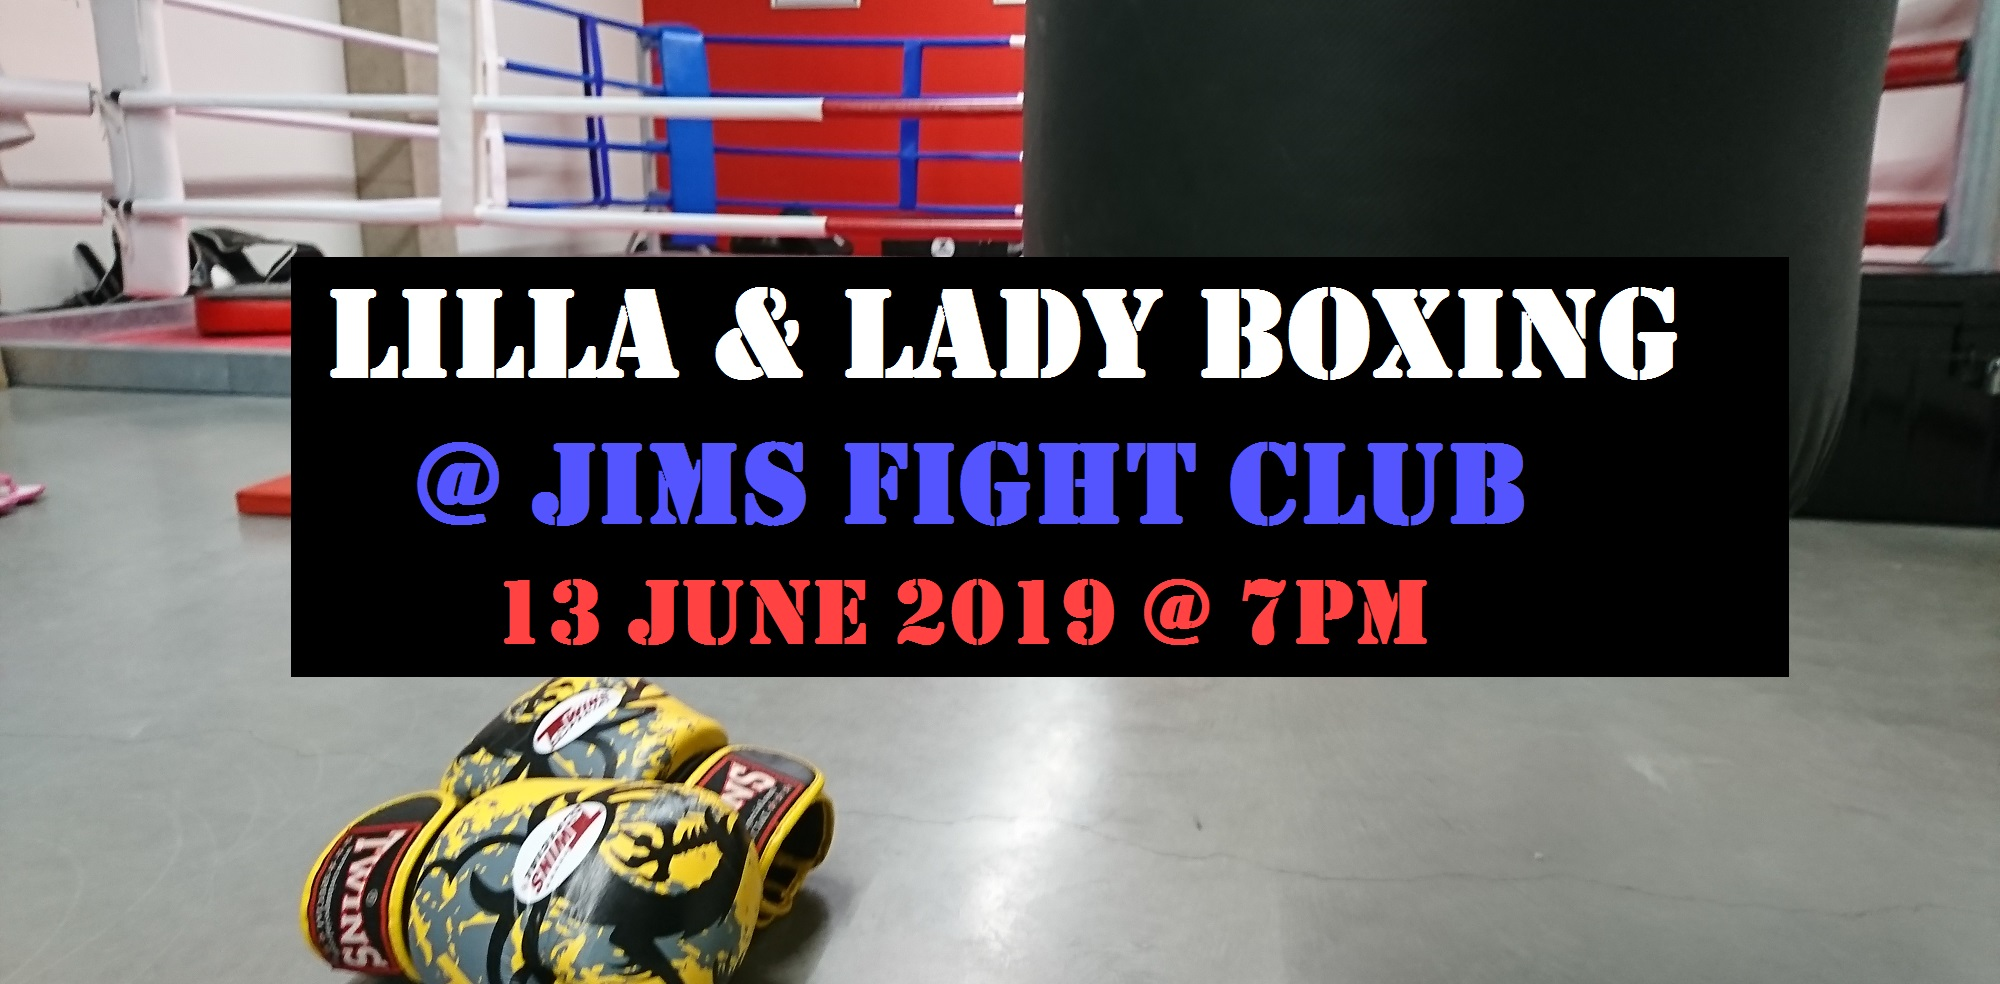 LILLA & Lady Boxing @ JIMS Fight Club